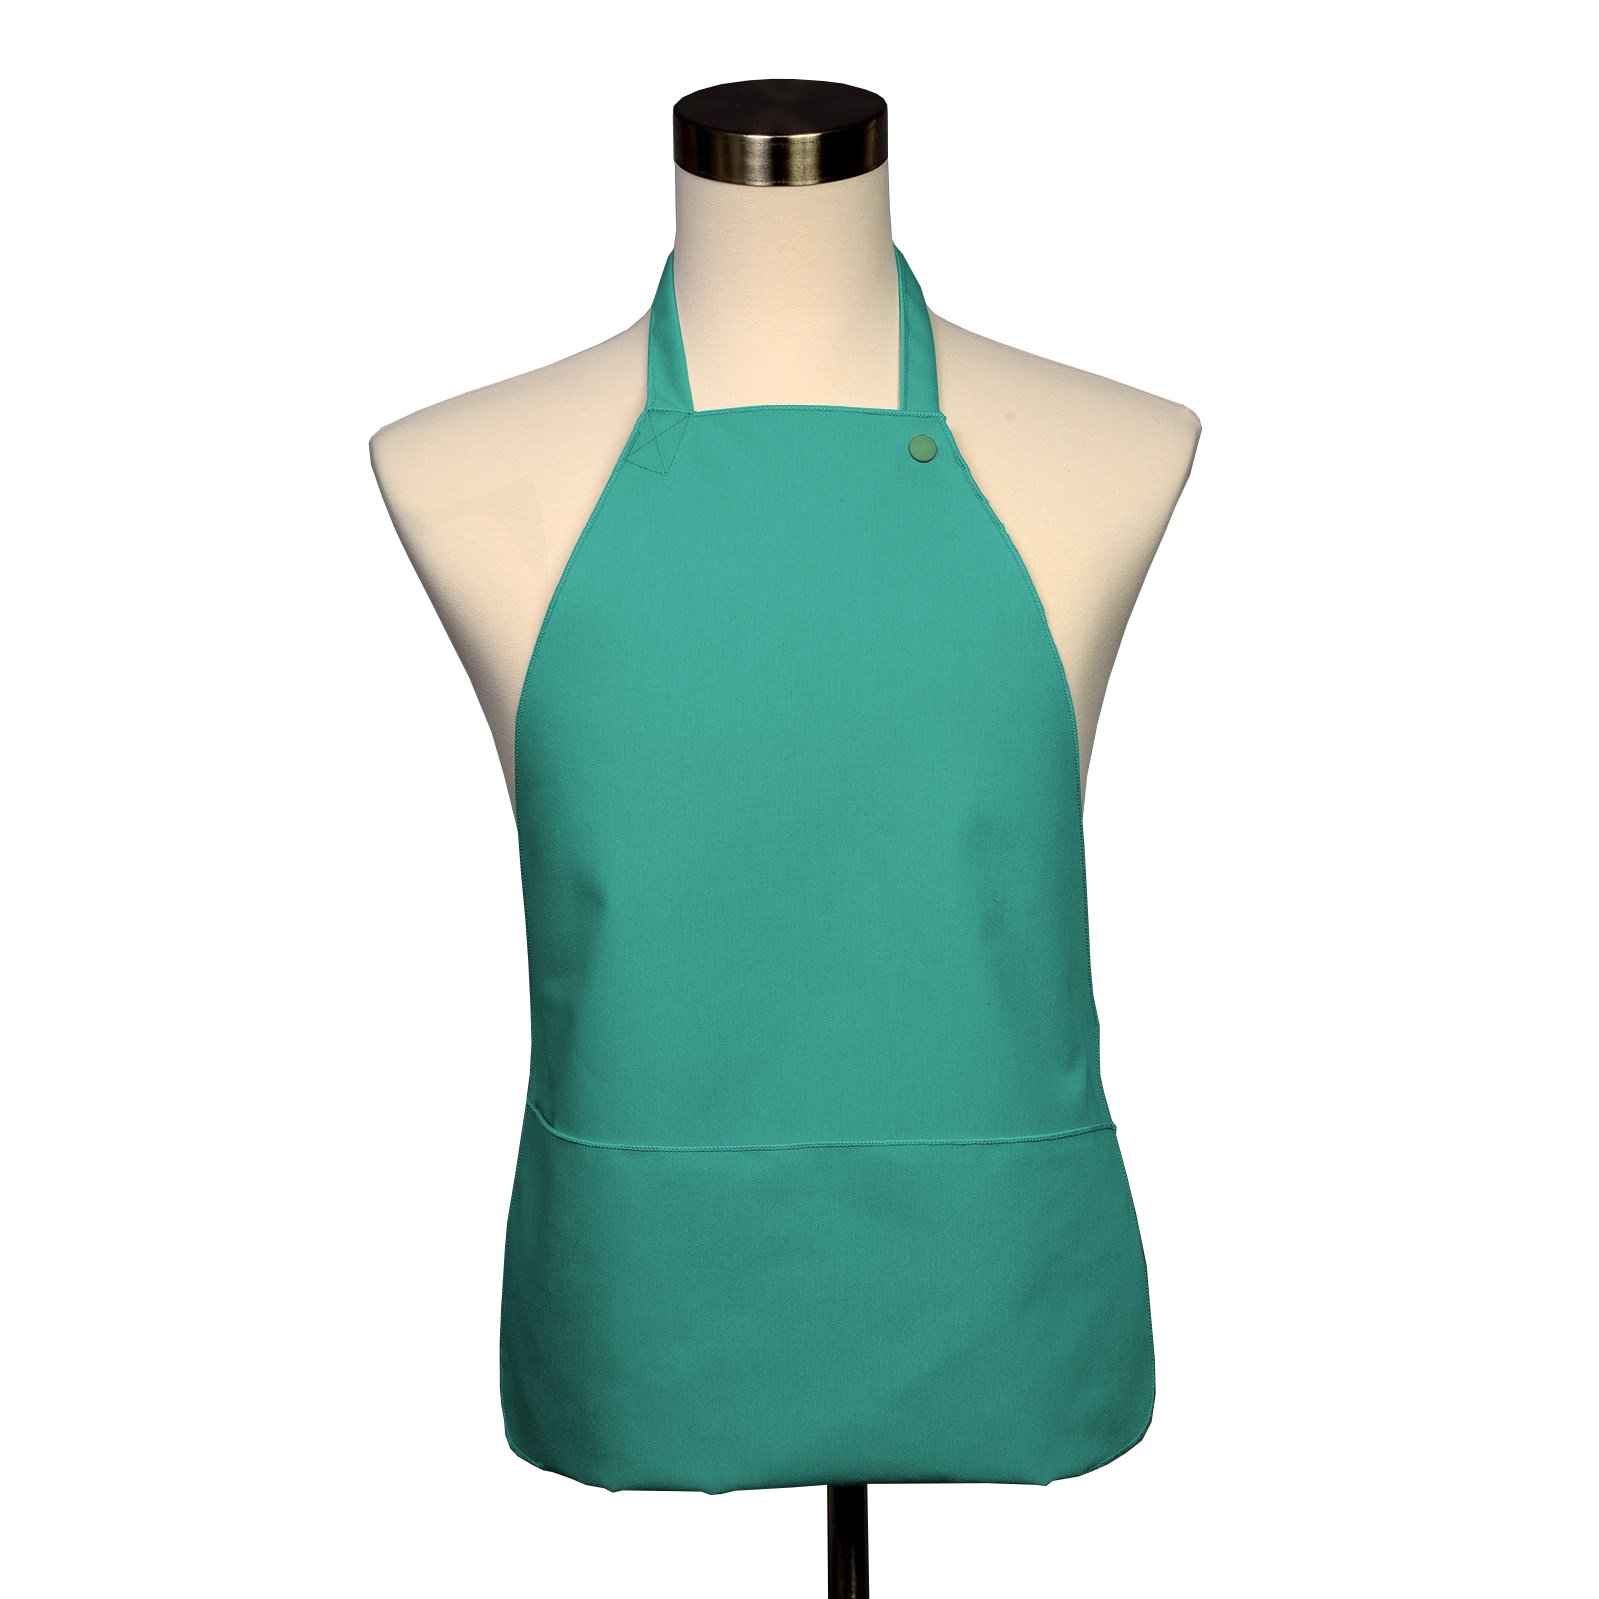 Adult Bib 10 Pack - Covered with Care Assorted Colors Available! (Belize Blue) by Fabric Textile Products